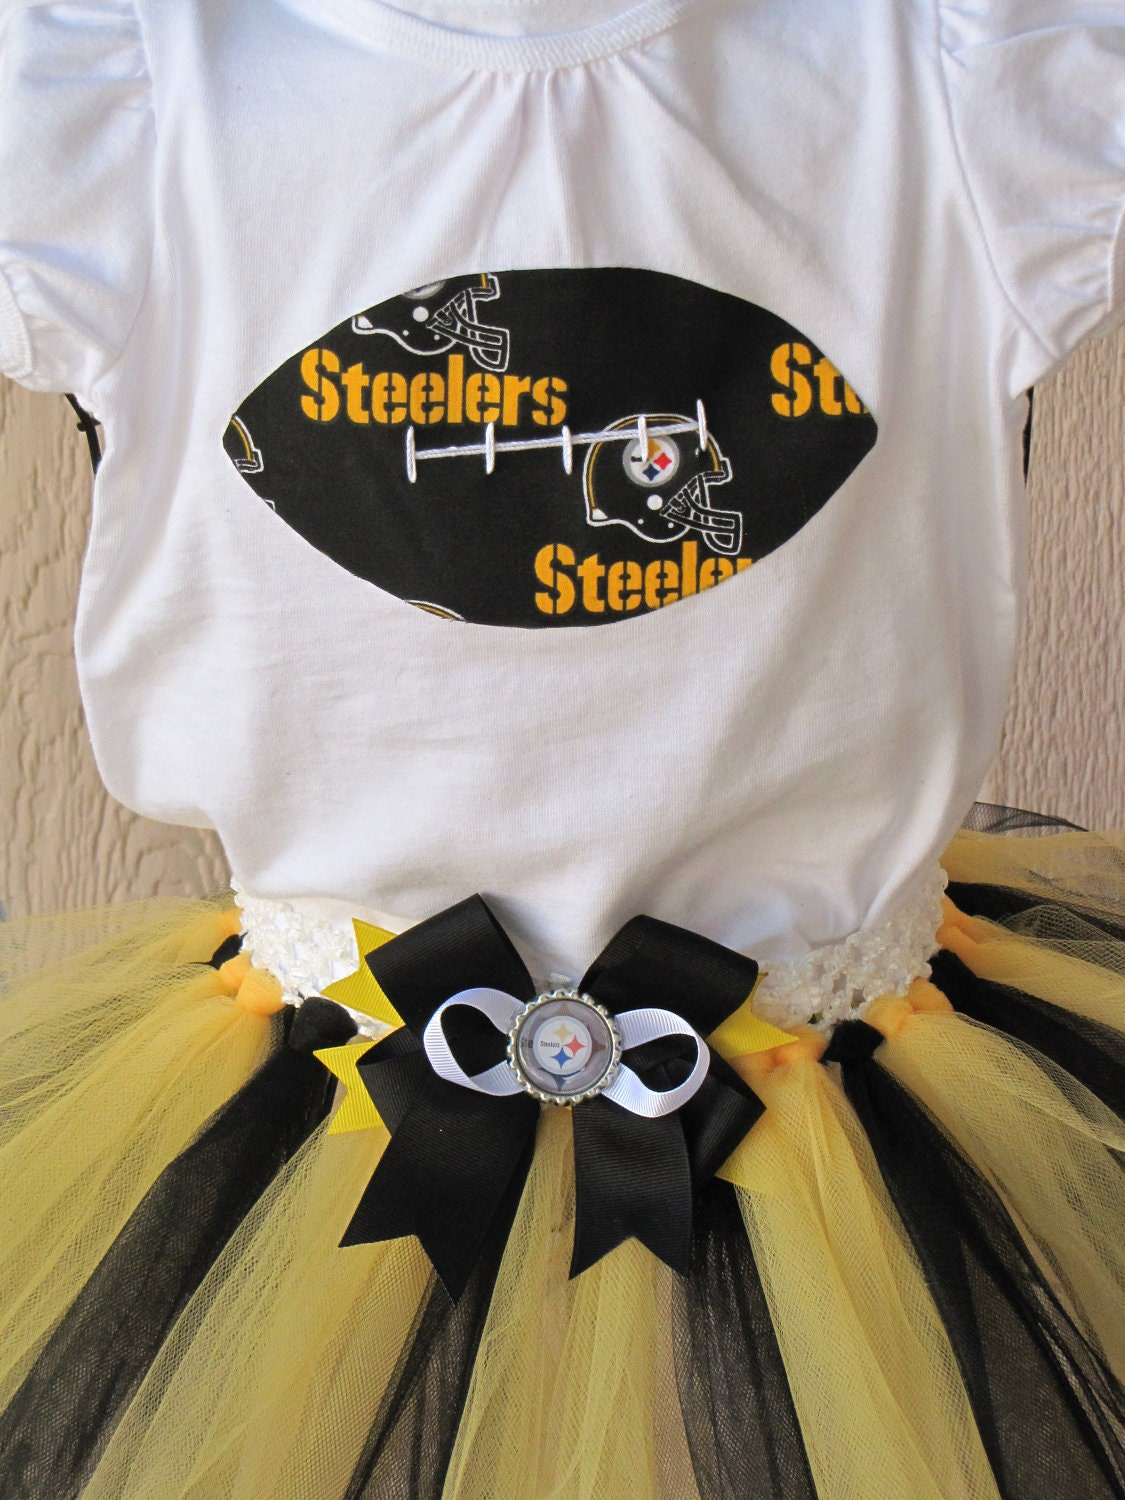 NFL Steelers Black and Yellow Tutu & Shirt Set with Detachable Hair Bow  24M